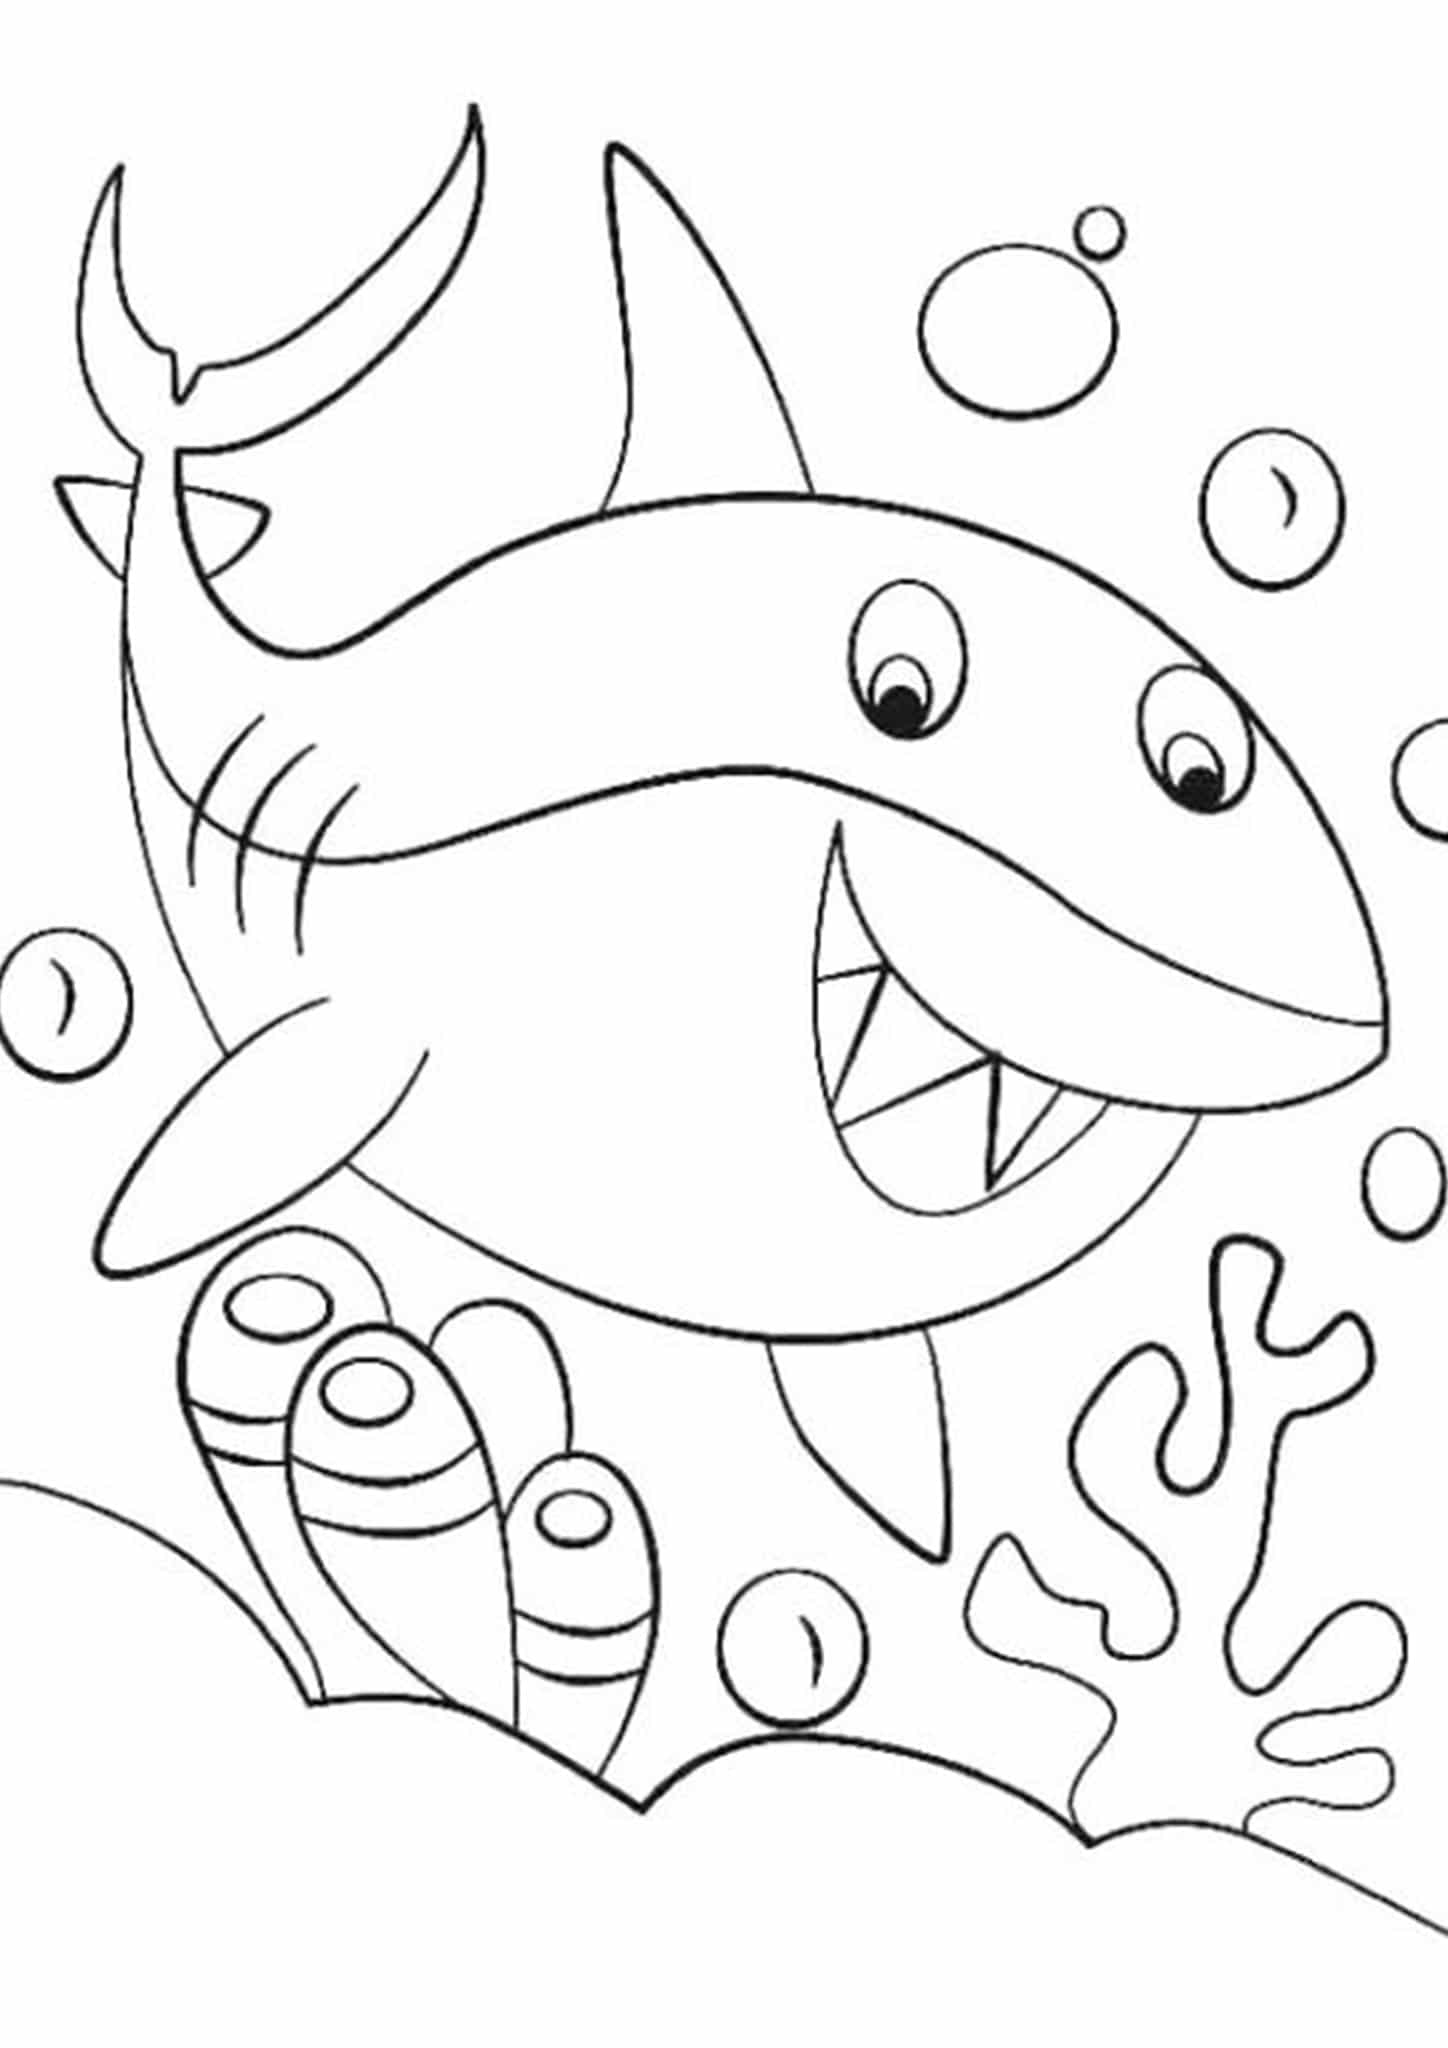 pictures of sharks to colour free printable shark coloring pages for kids of pictures sharks colour to